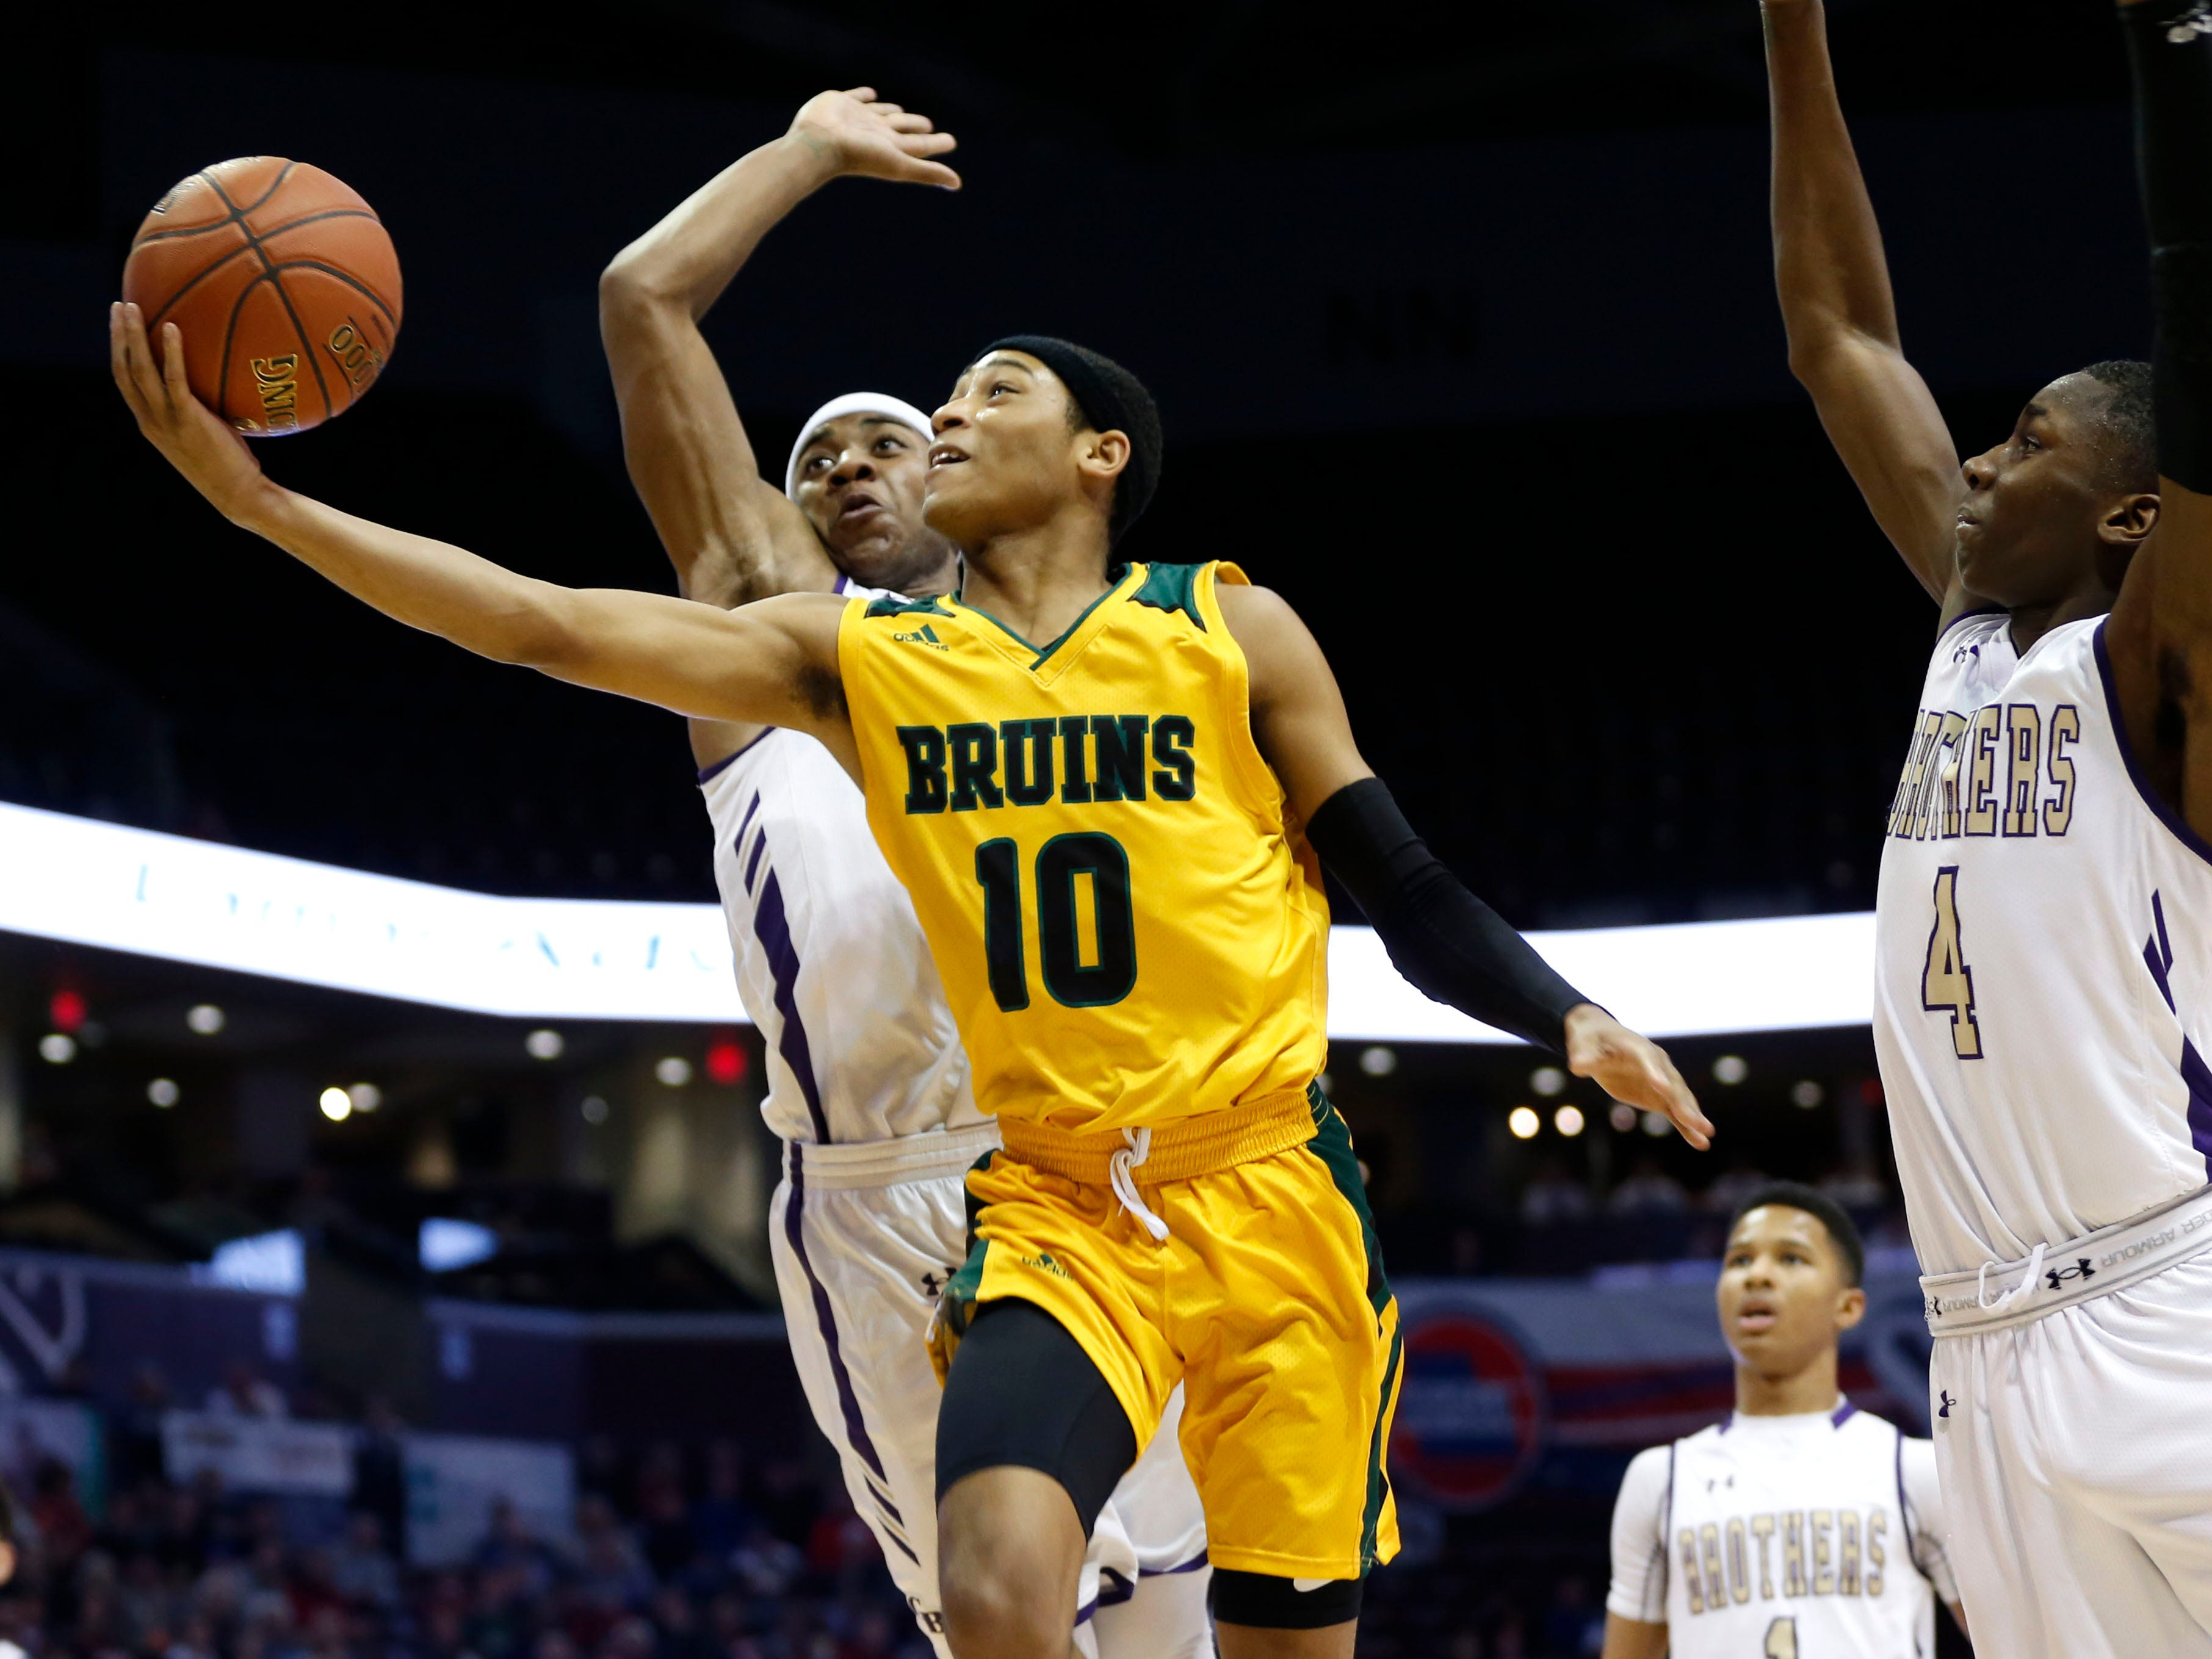 Rock Bridge's Dajuan Harris goes up for a basket during the Class 5 state championship game at JQH Arena on Saturday, March 16, 2019.